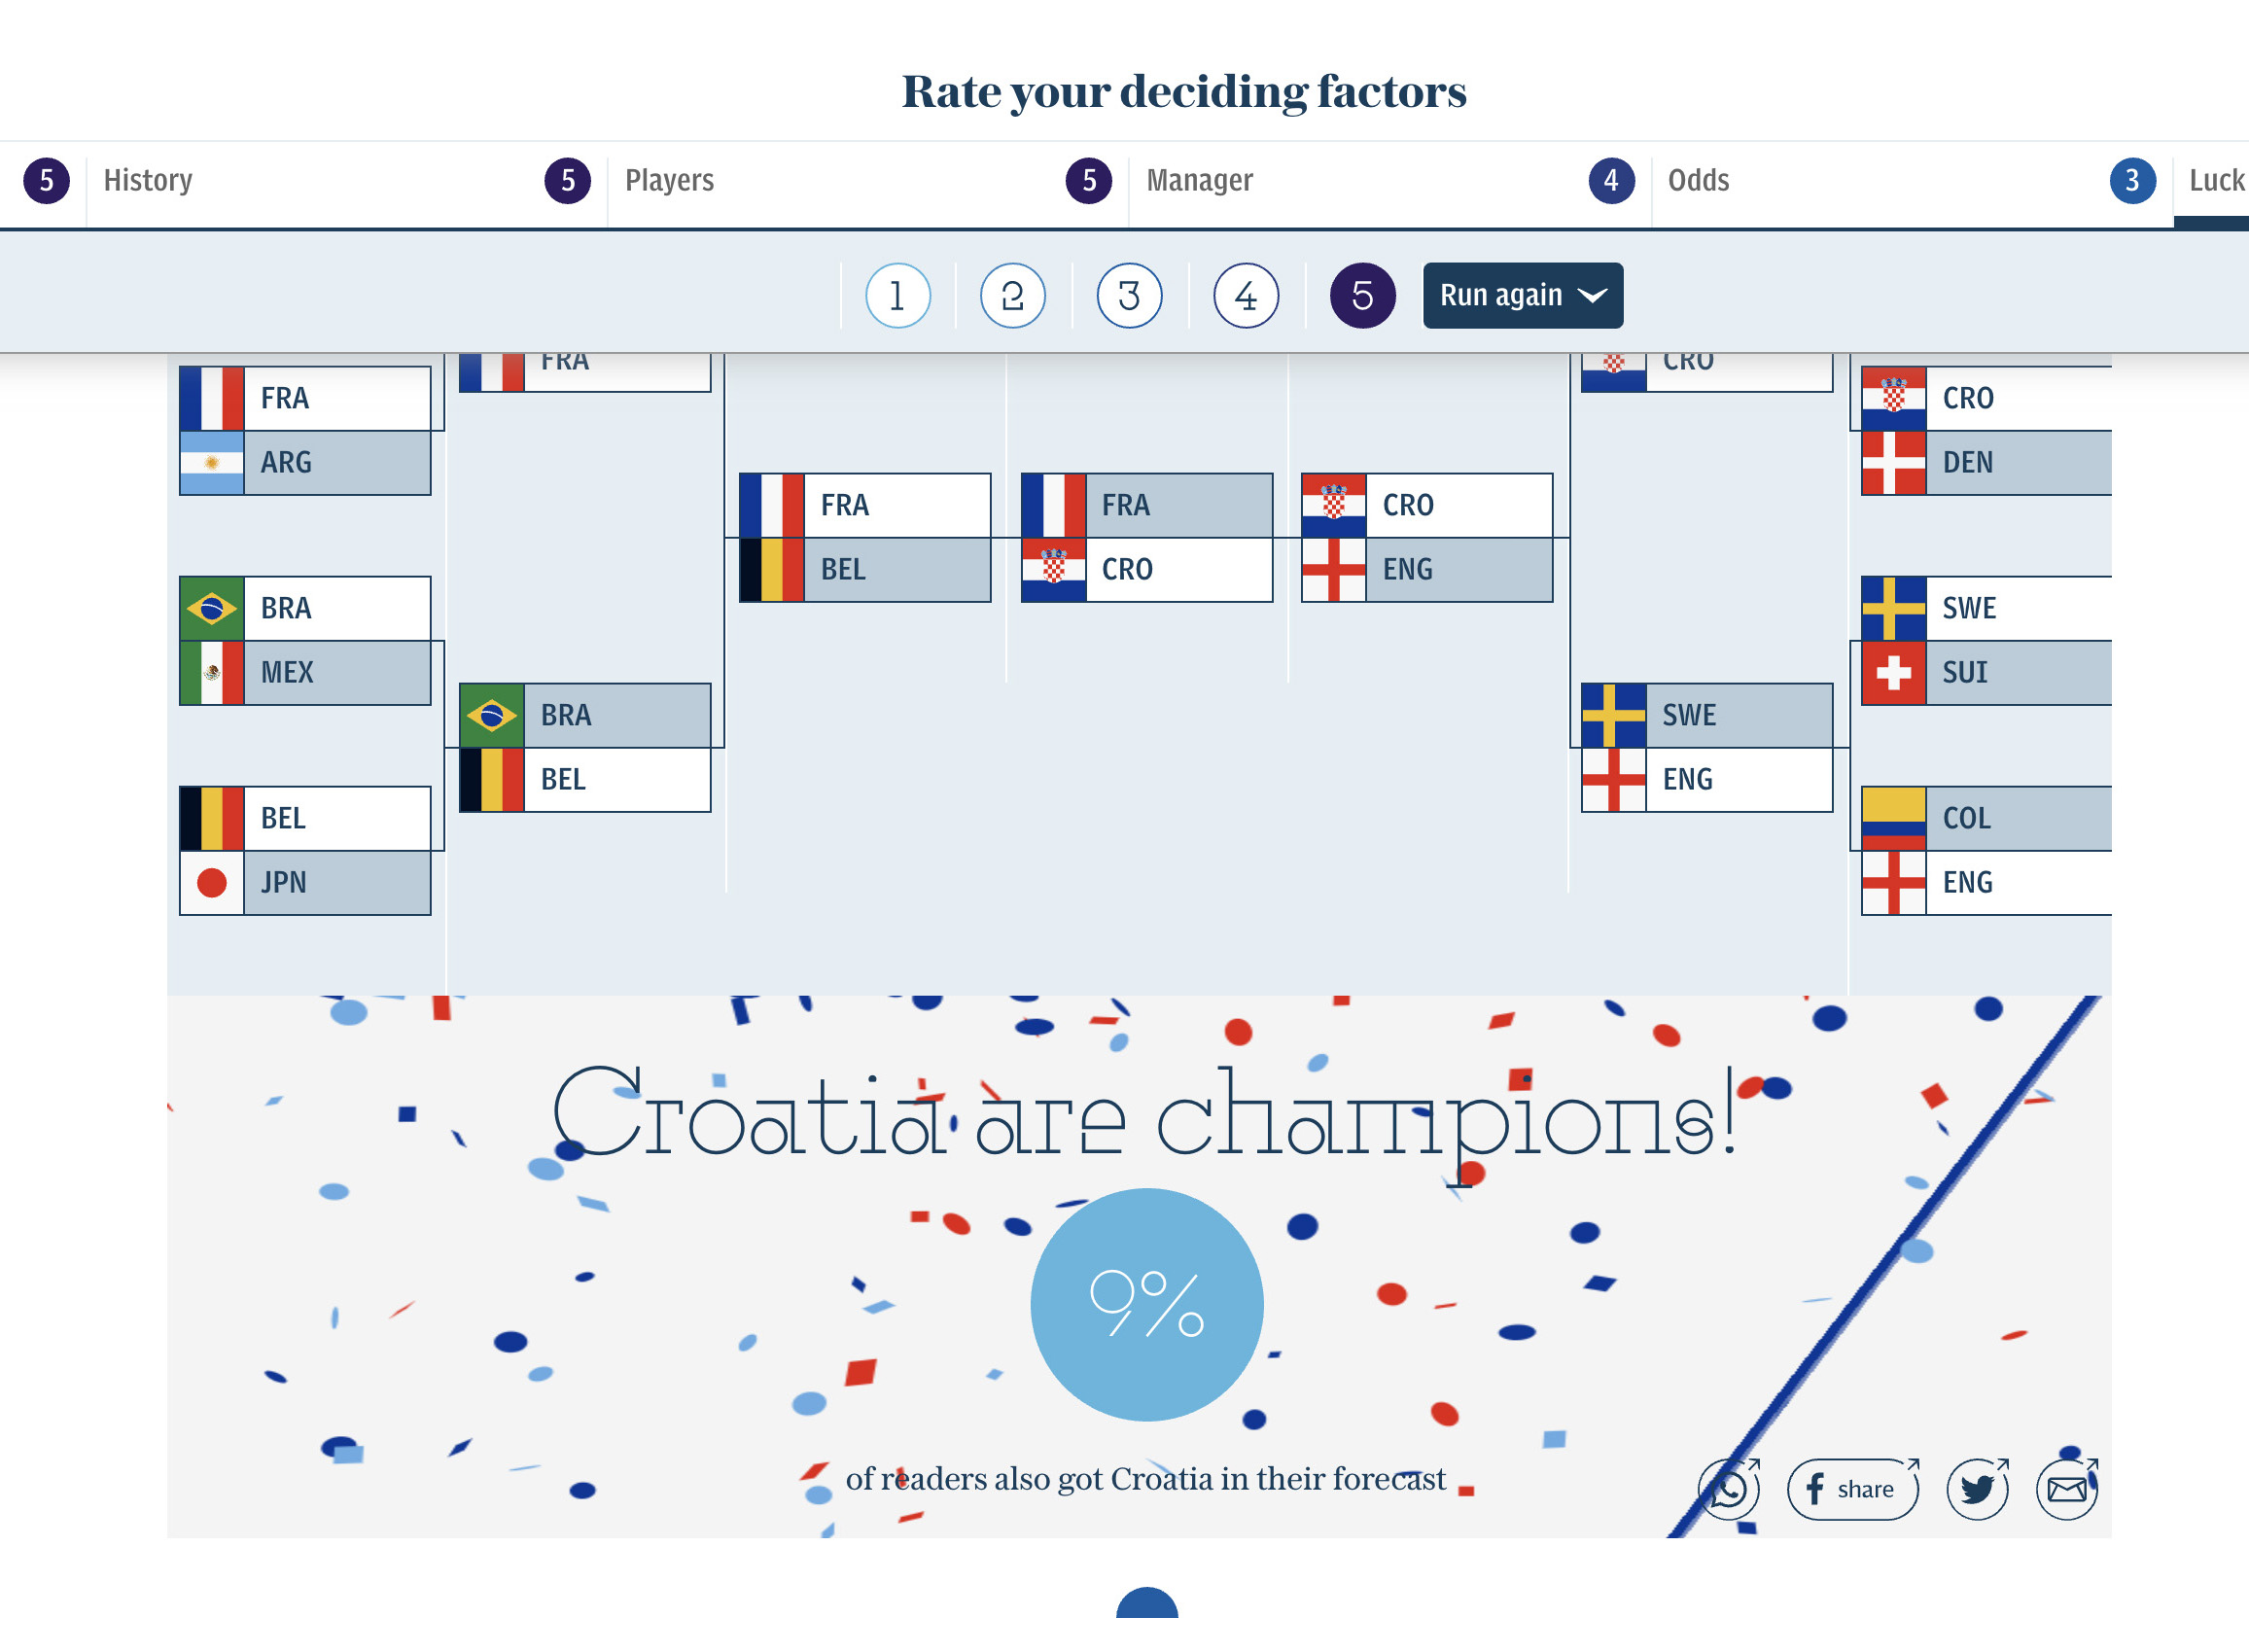 Rate your deciding factors and find out who will be the World Cup champion